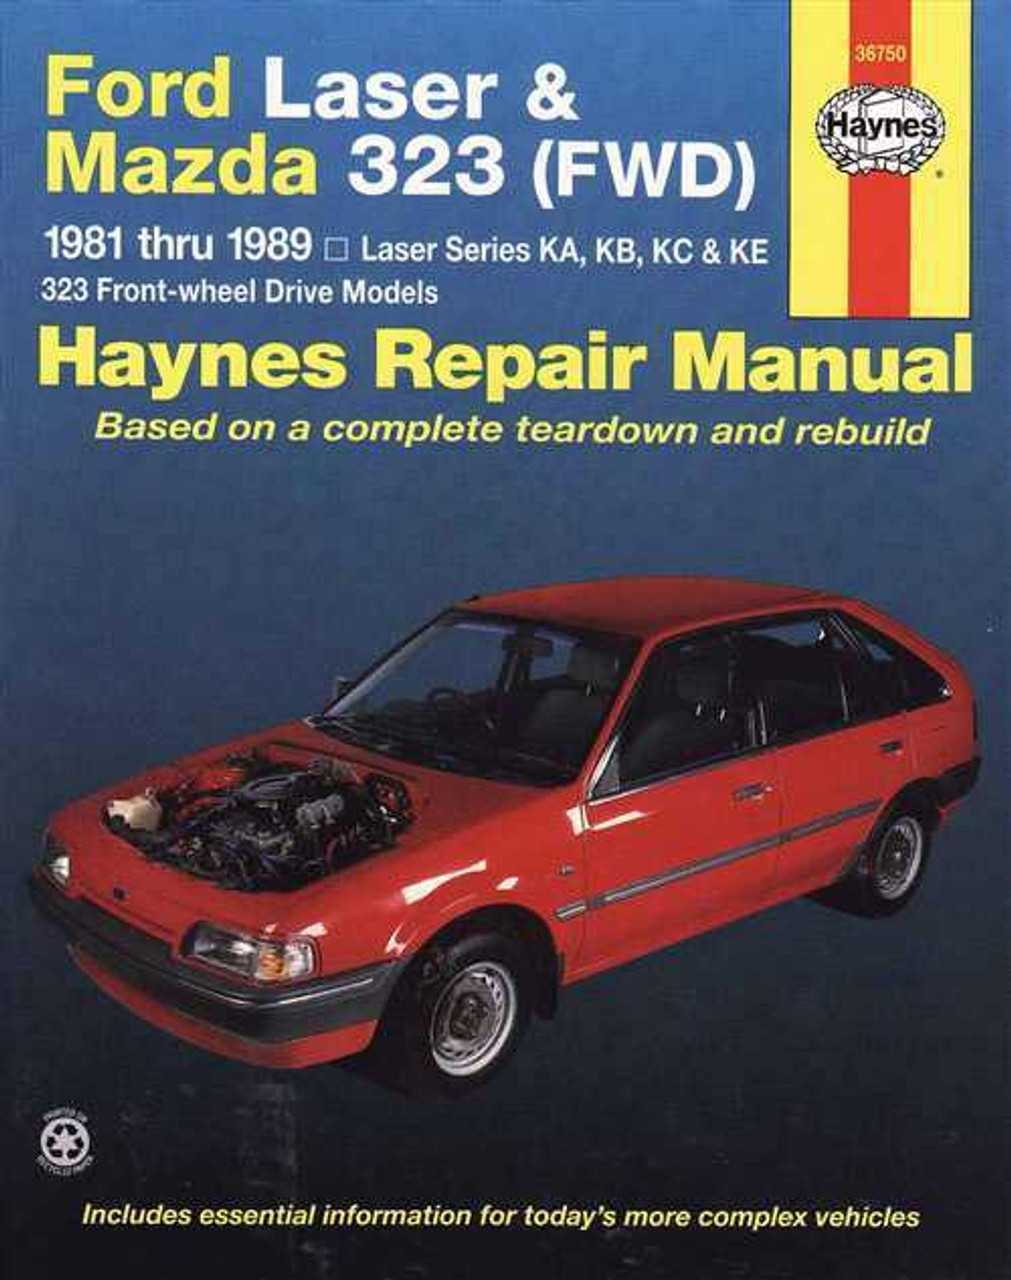 ford laser amp mazda 323 1981 1989 workshop manual rh automotobookshop com au 1989 mazda 323 service manual 1988 mazda 323 service manual